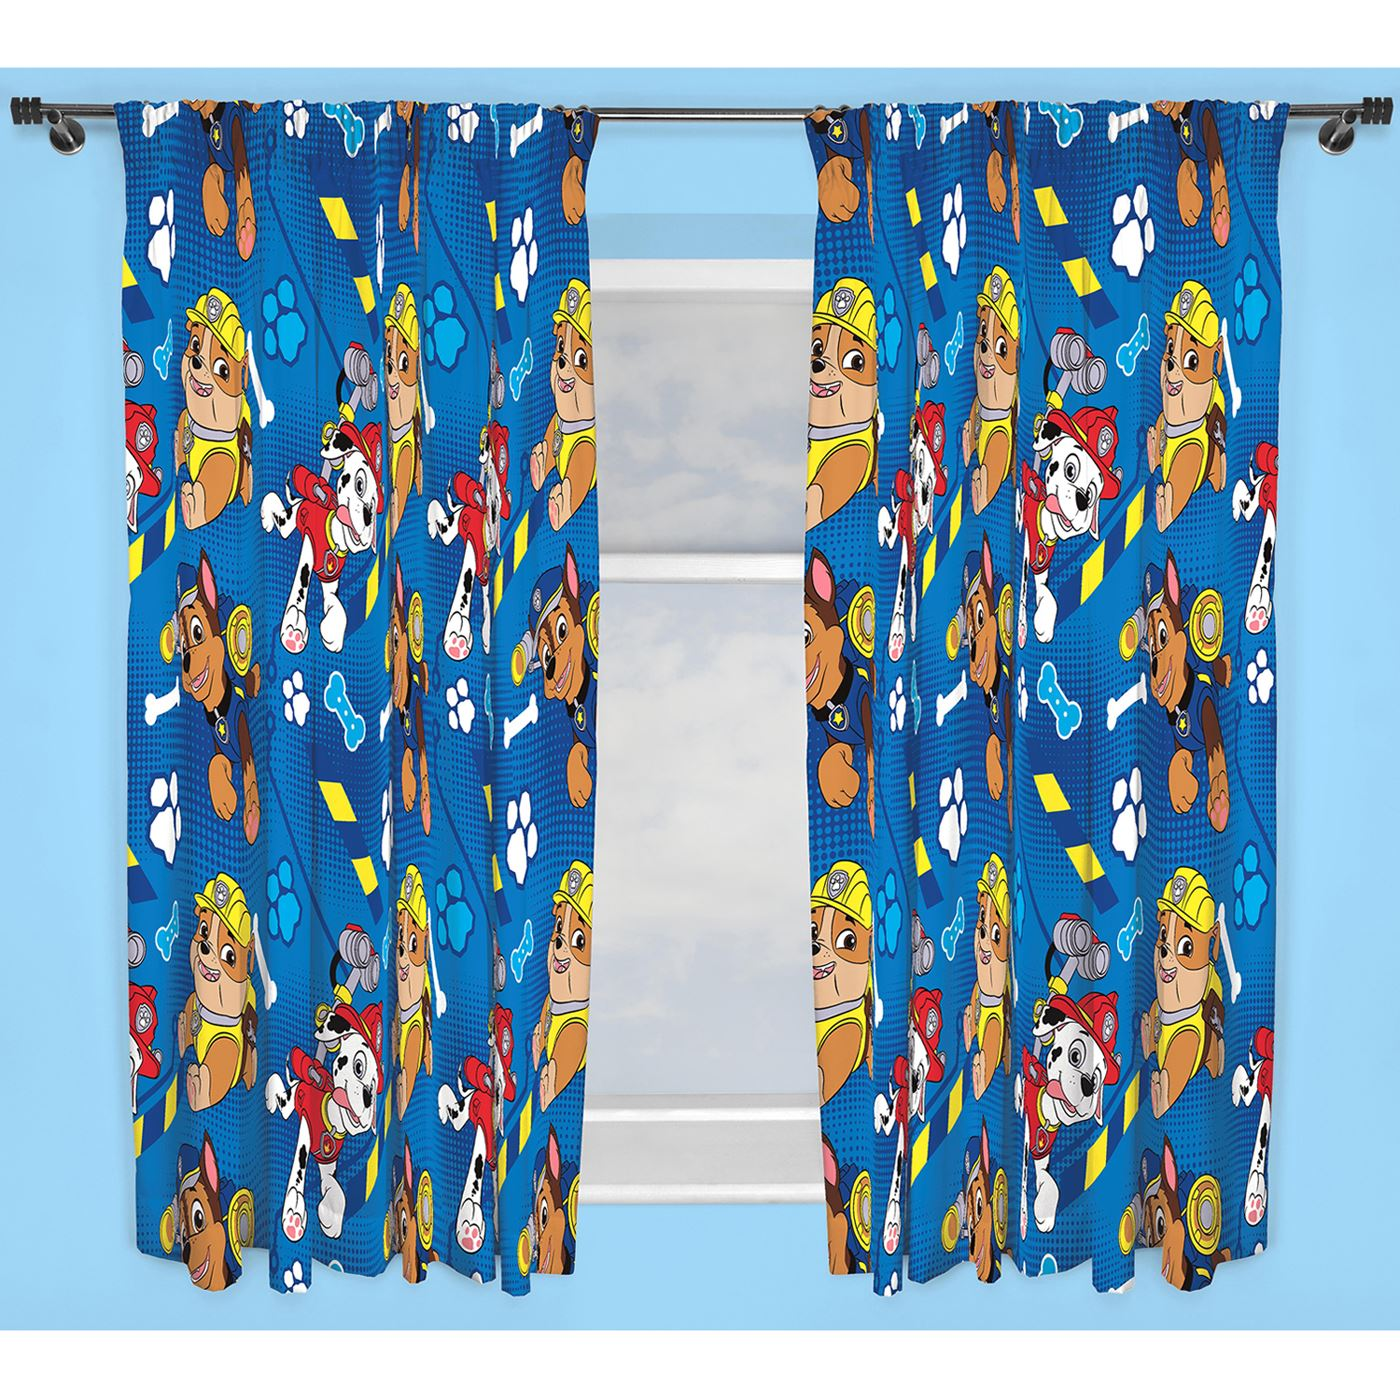 Boys bedroom curtains free image – Curtains for Boys Bedroom